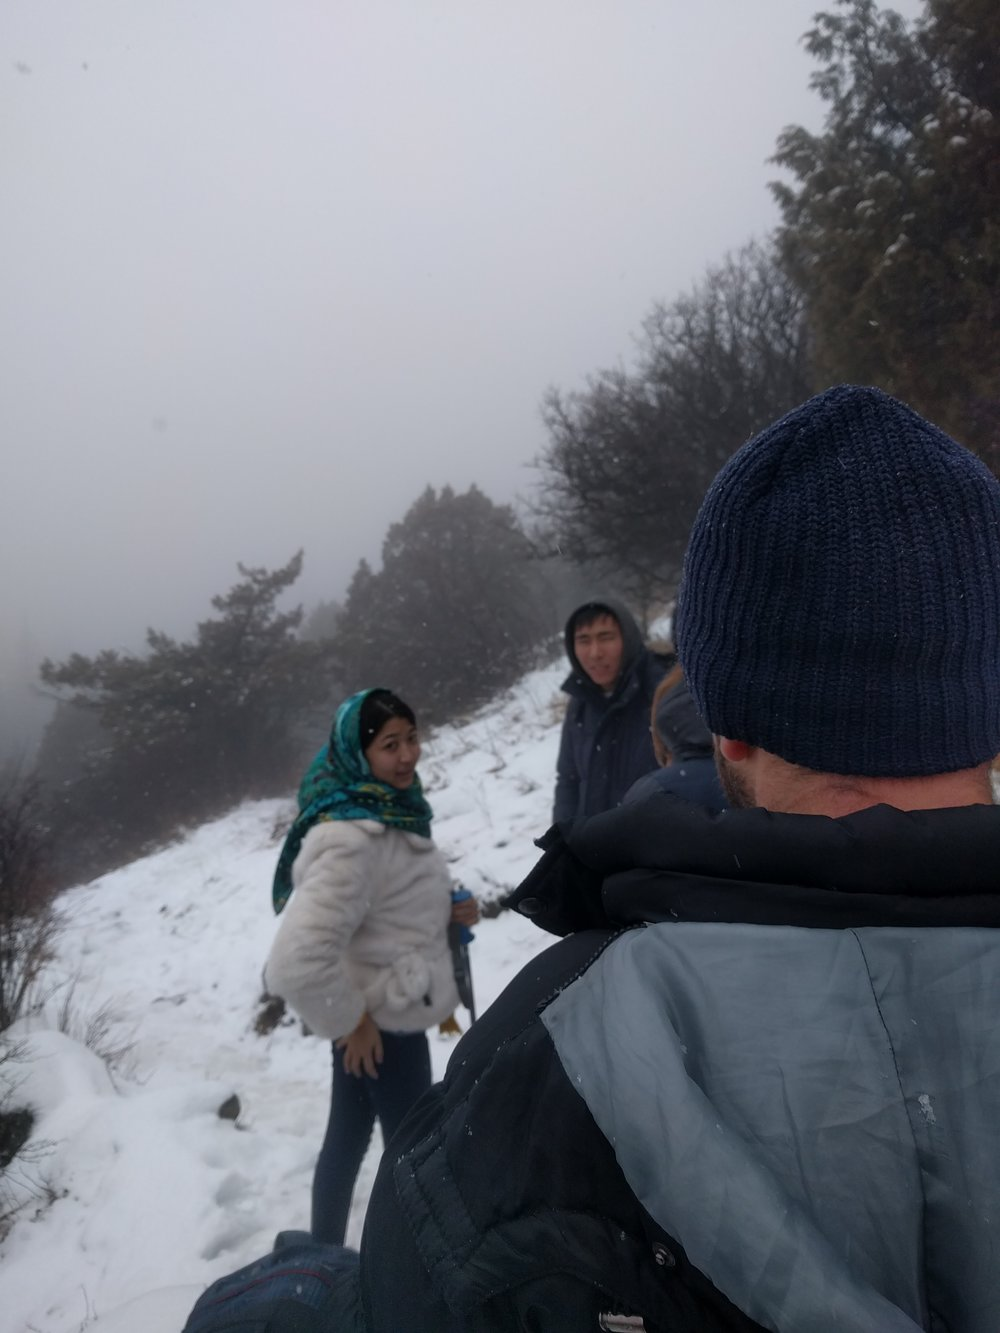 We ran into a young Kyrgyz couple on our way up.  They were sweet and clearly in love.